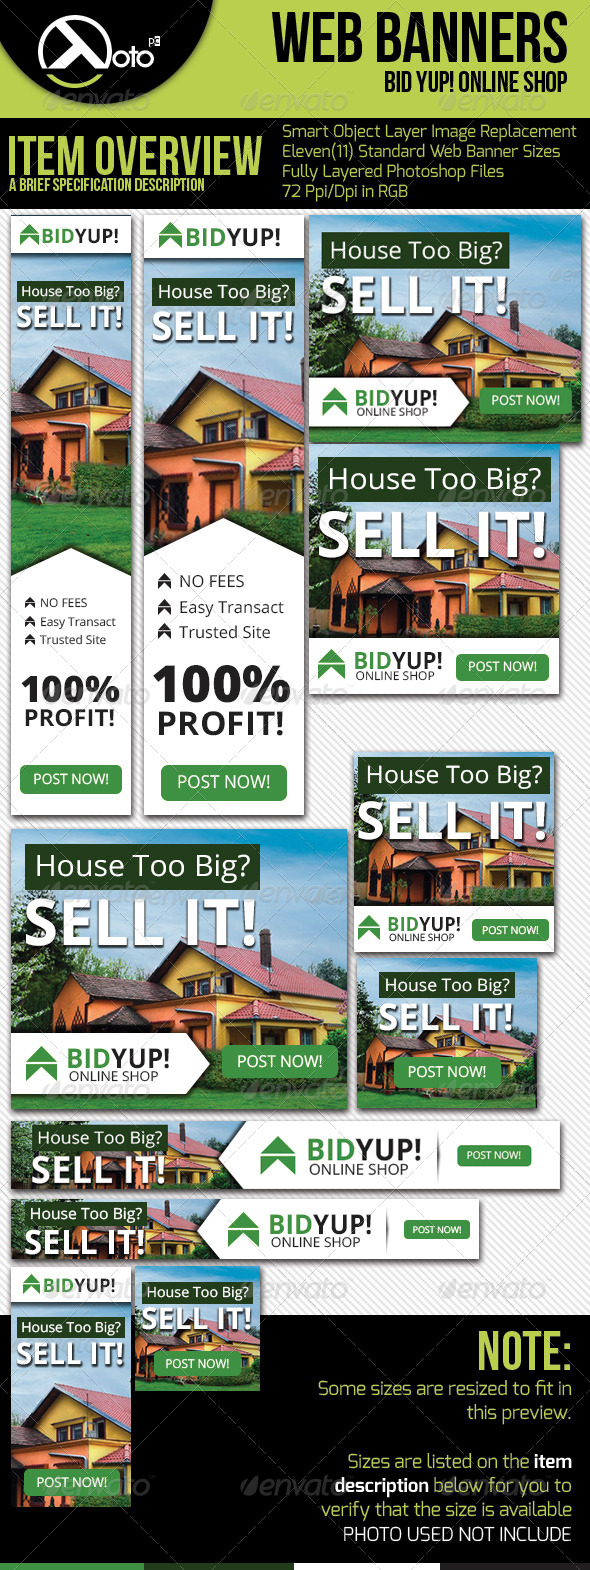 GraphicRiver Bid Yup Online Shop Web Banners 6327430